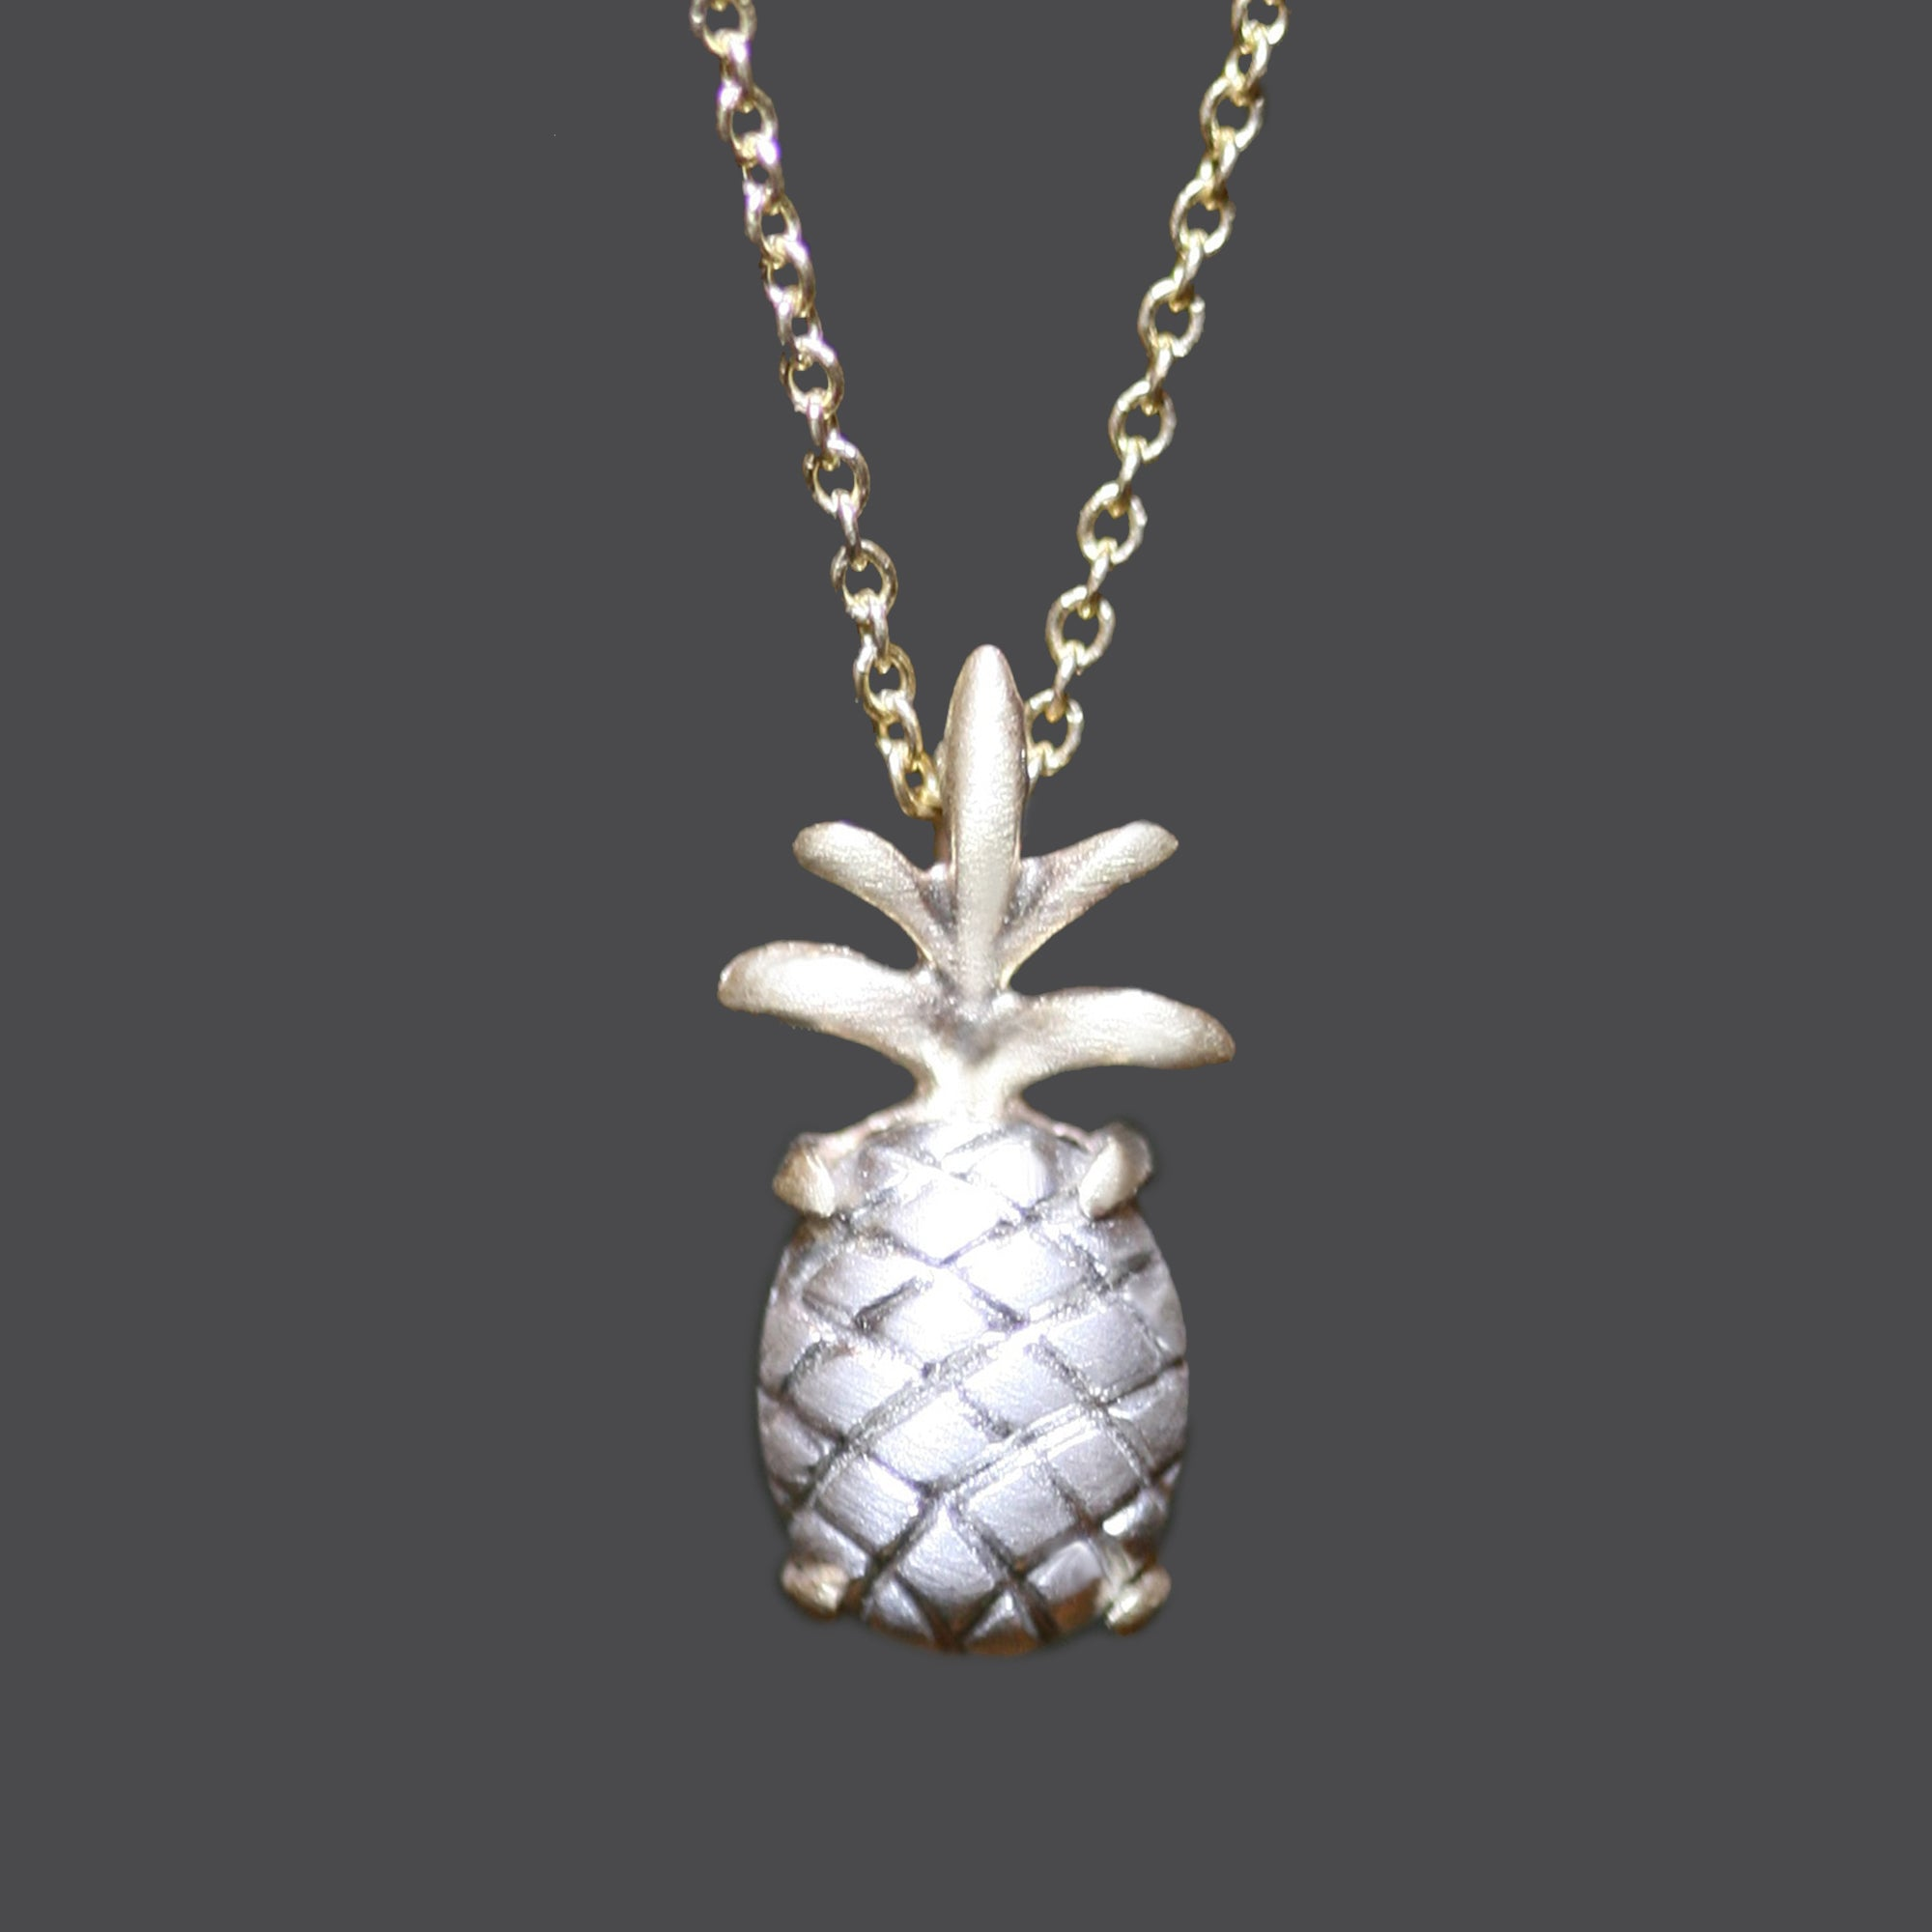 operandi by large essere moda gold pineapple loading necklace